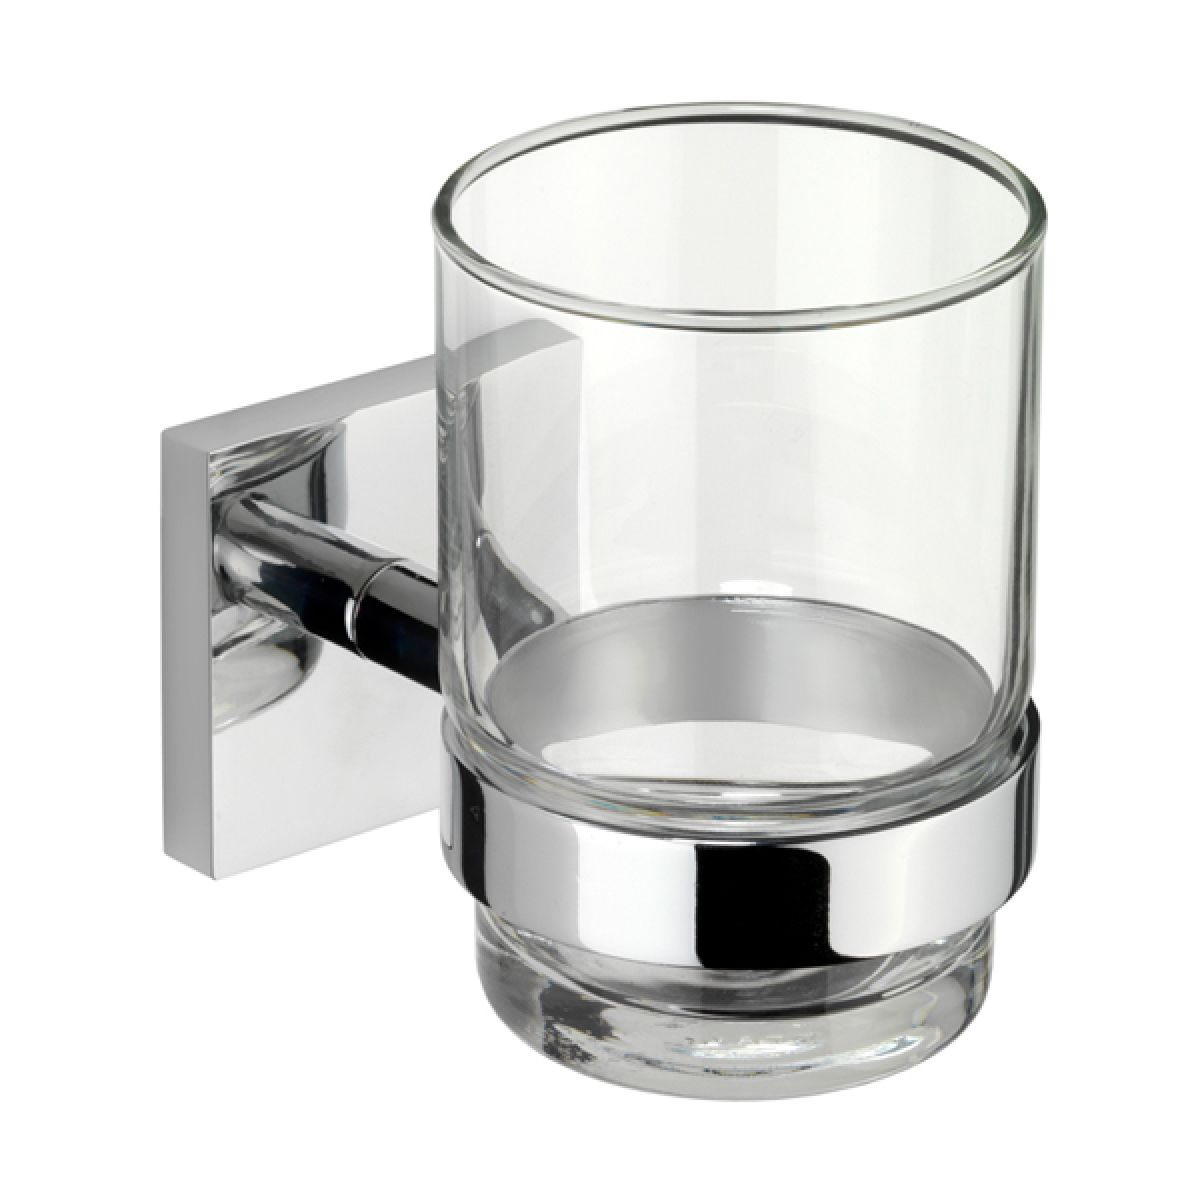 Croydex Chester Tumbler and Holder